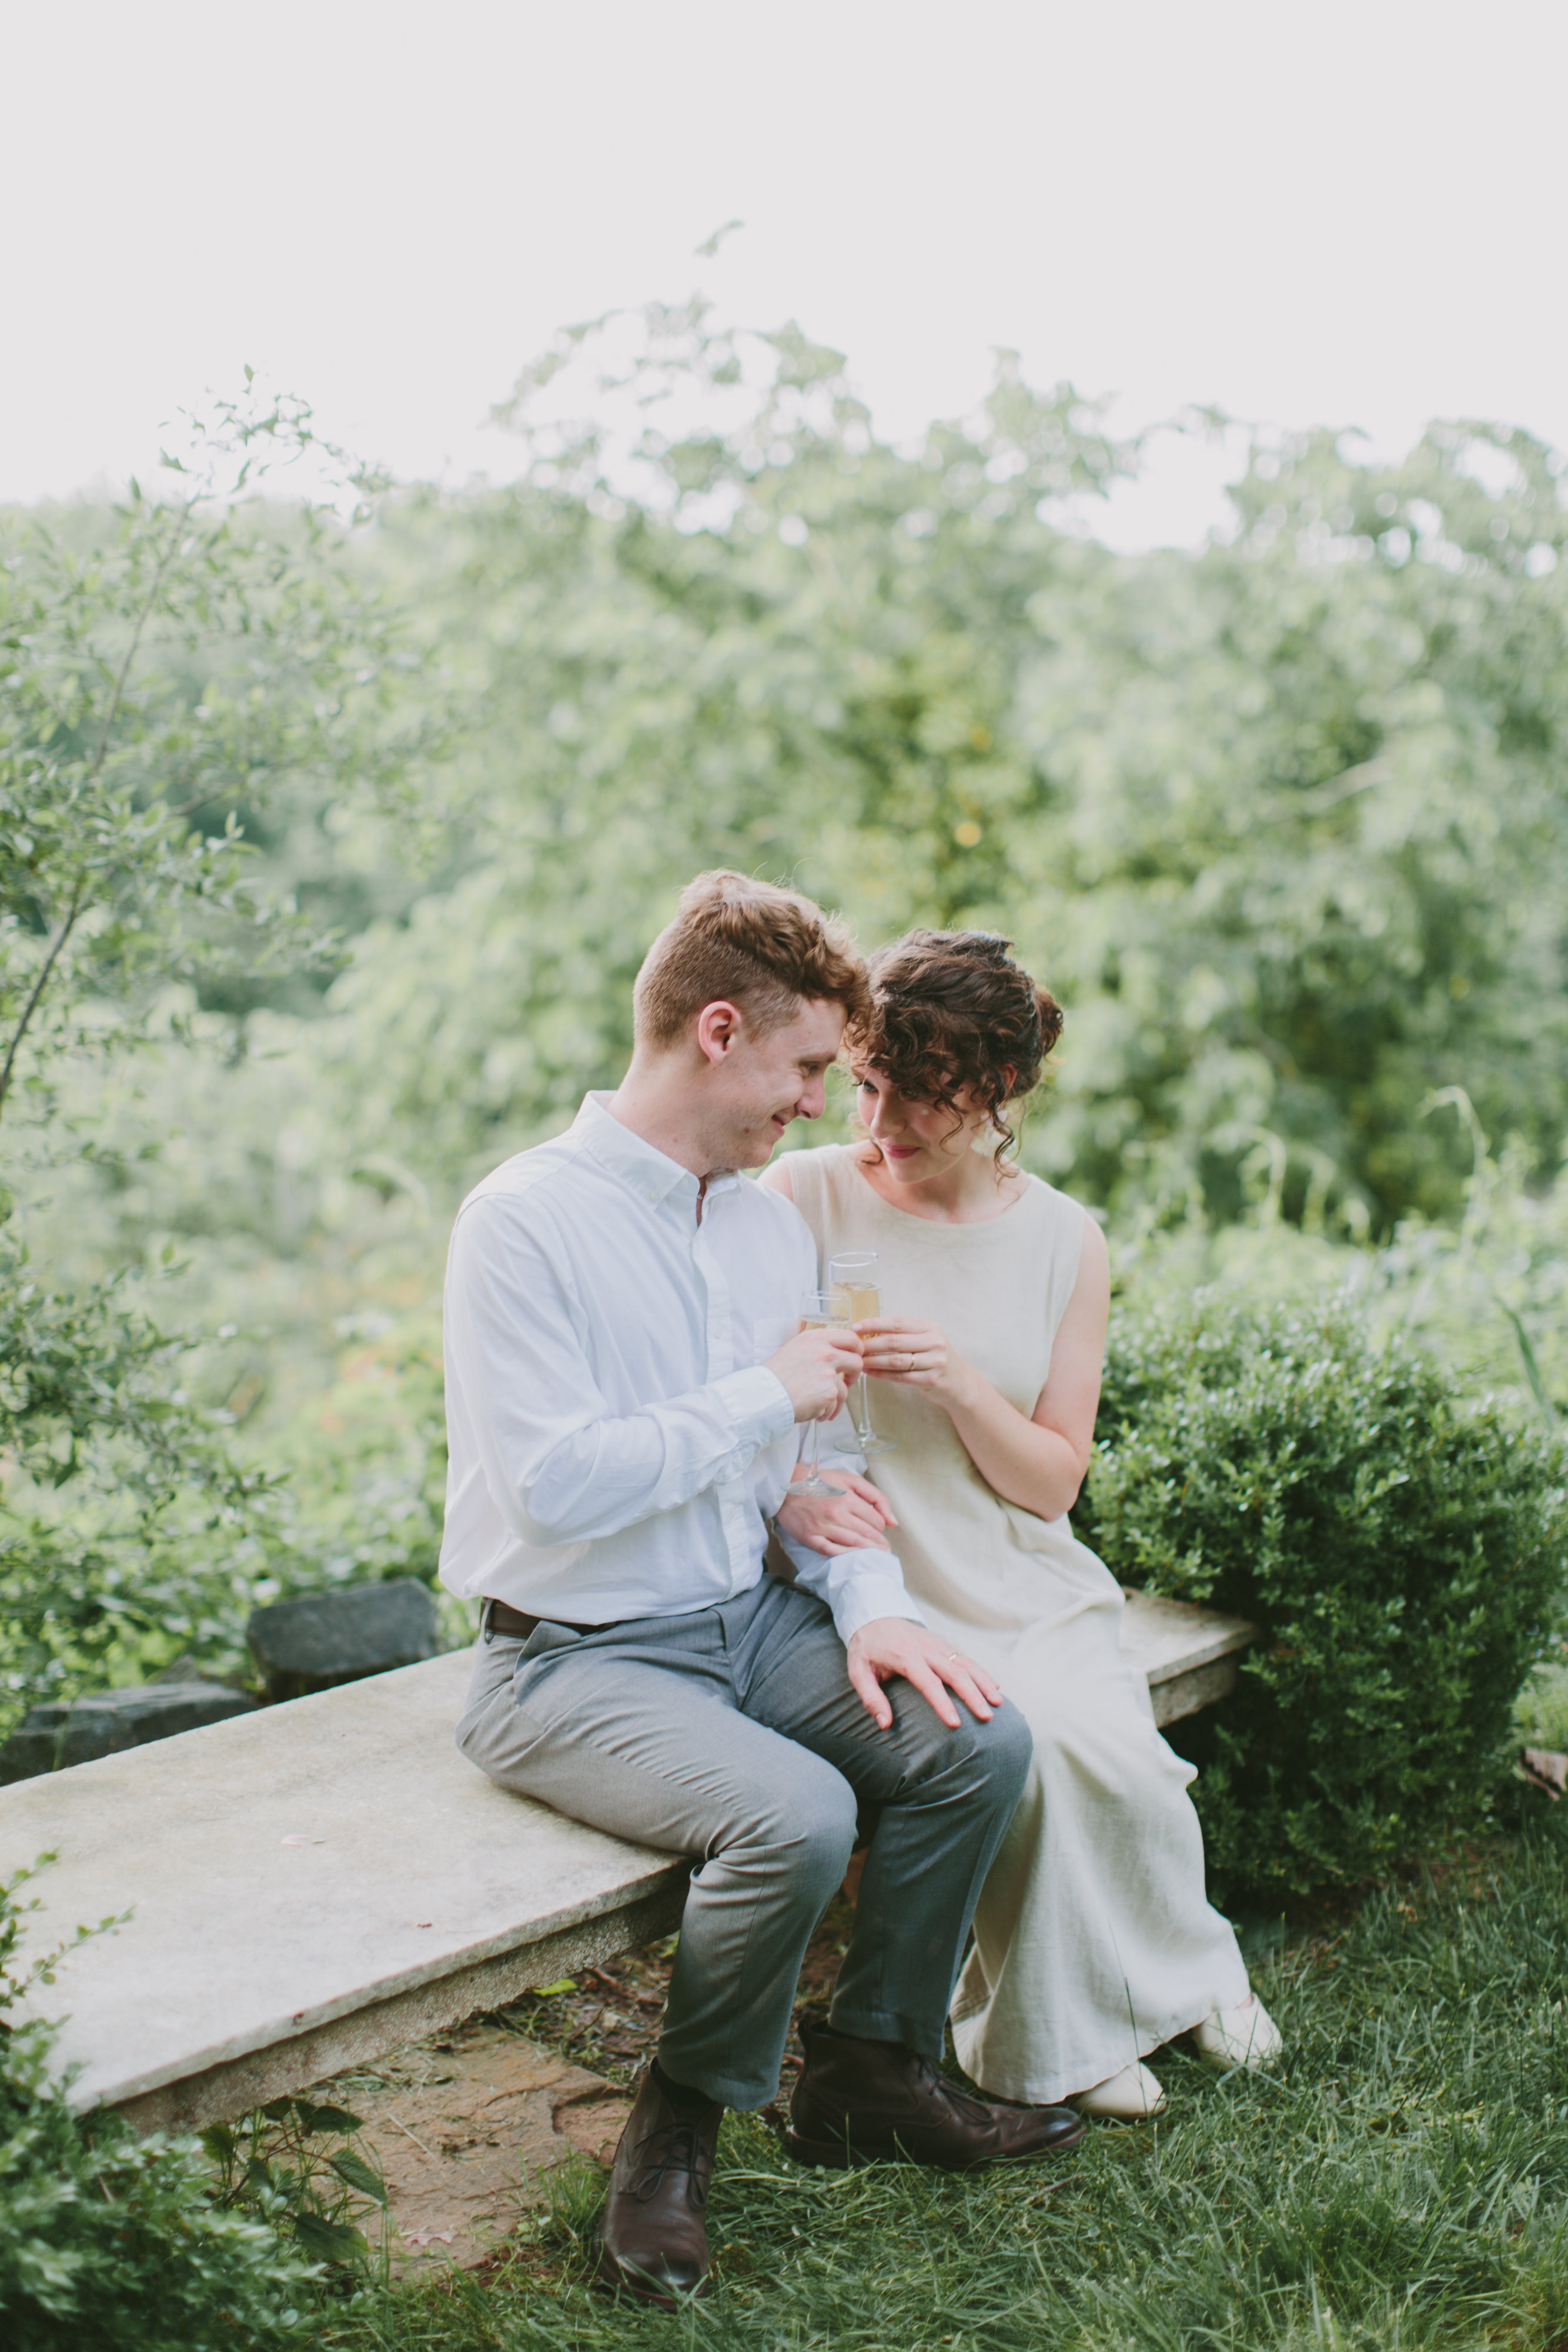 European-Style Countryside Elopement Inspiration